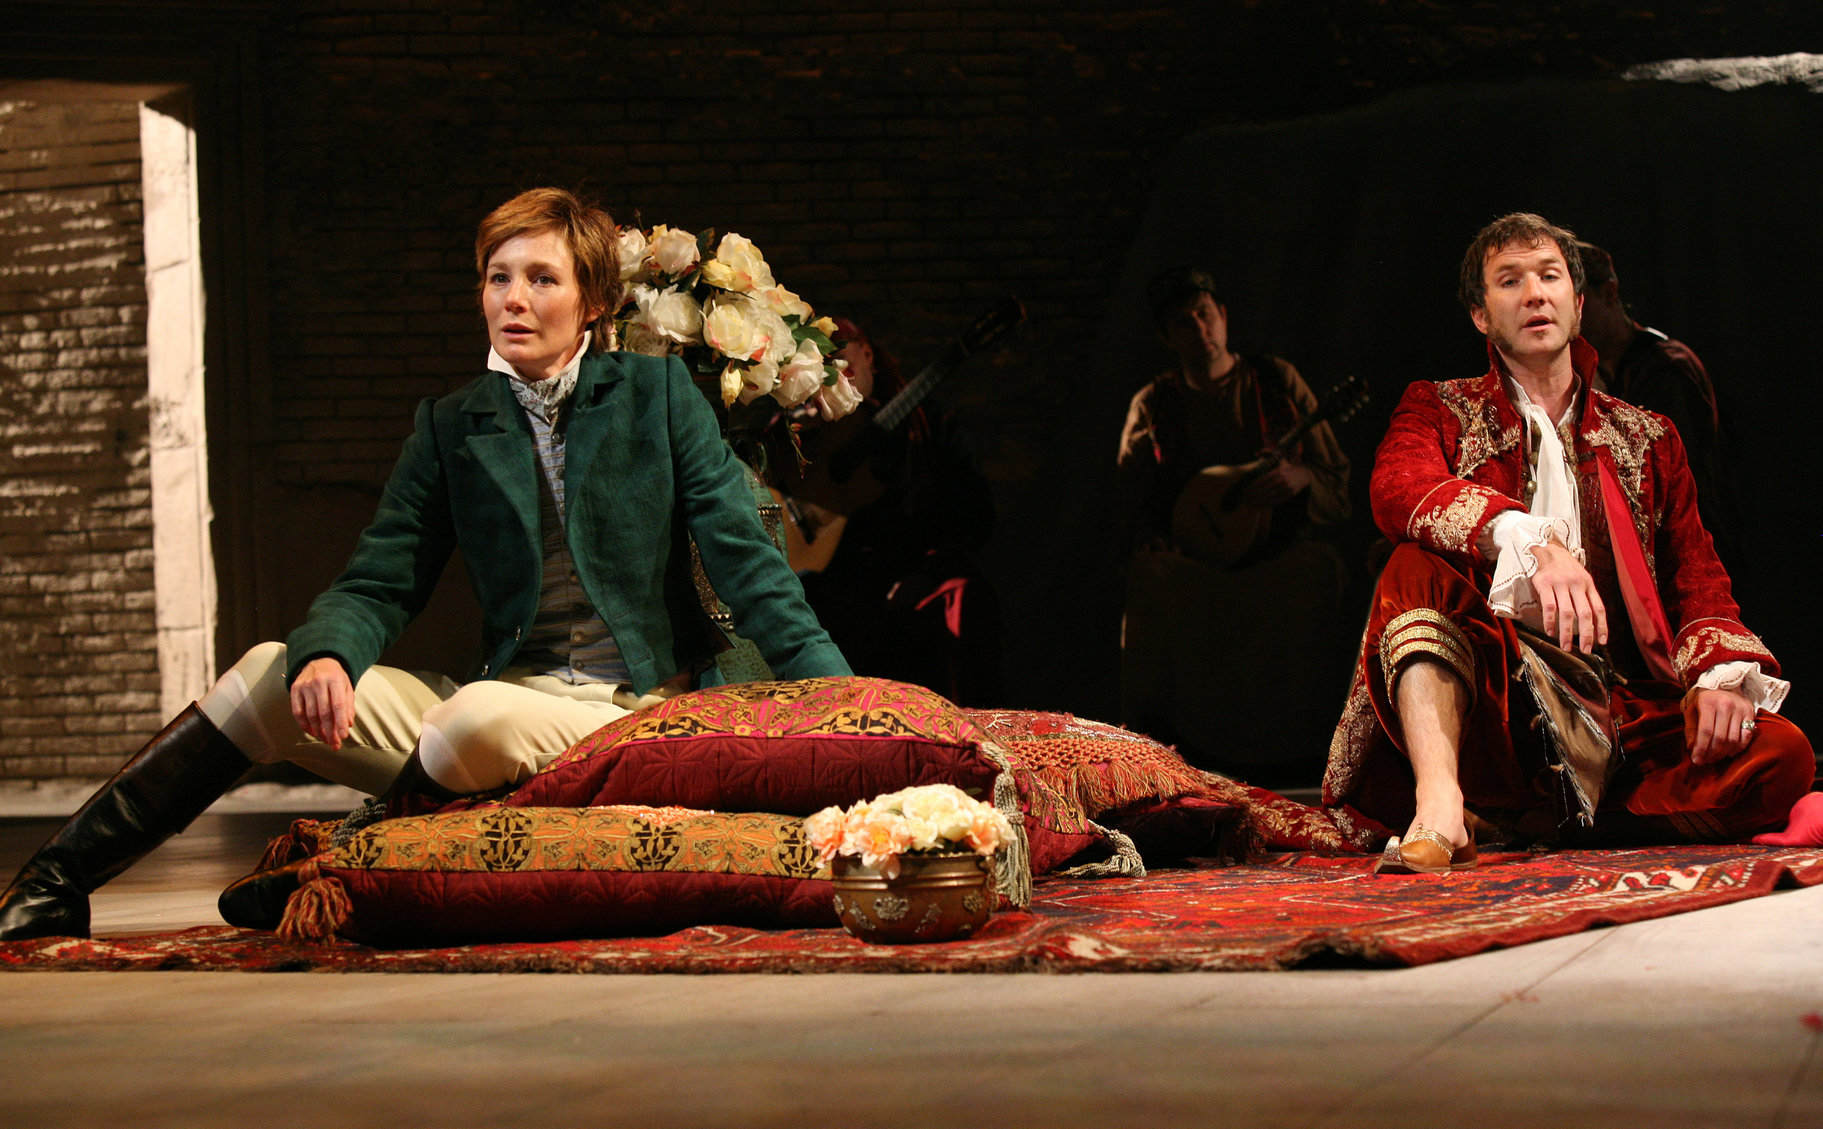 Viola dressed as 'Ceasrio' sits on scatter cushions on the floor, facing away from Orsino. Orsino, dressed in an elaborate red and gold robe with lace cuffs, sits on the floor behind her some distance away  in the 2009 production of Twelfth Night.